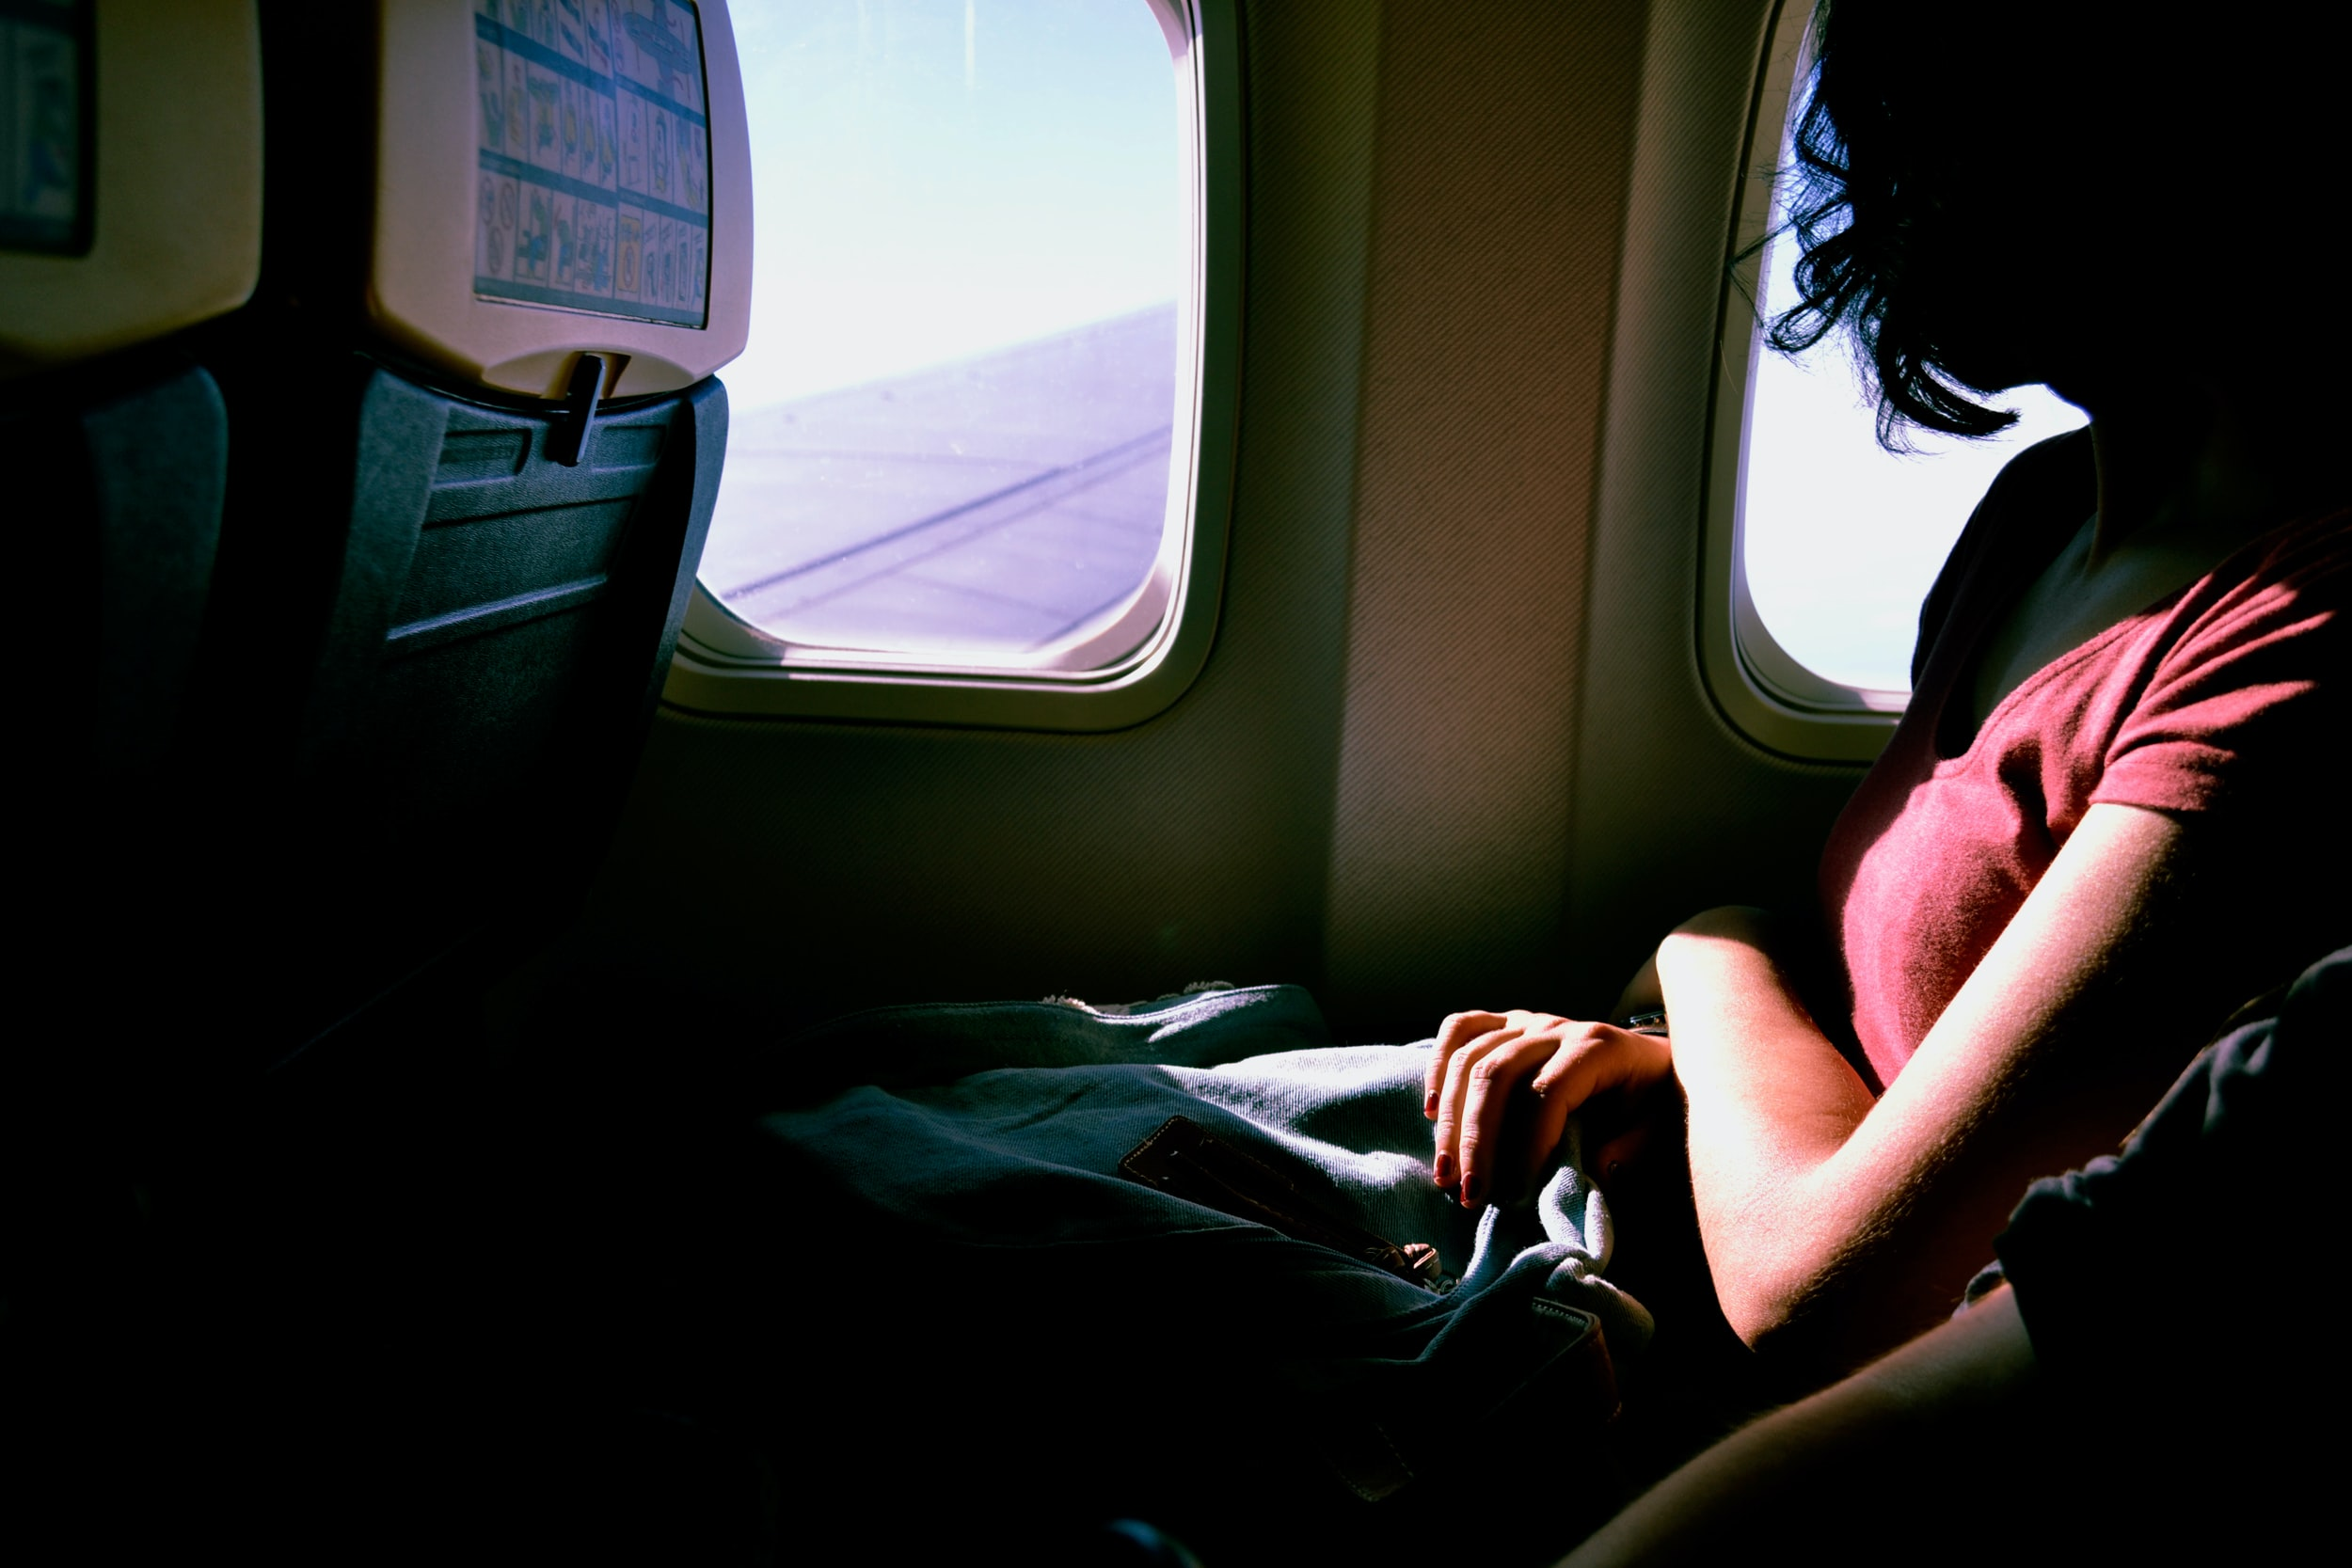 woman riding in airplane while watching at window